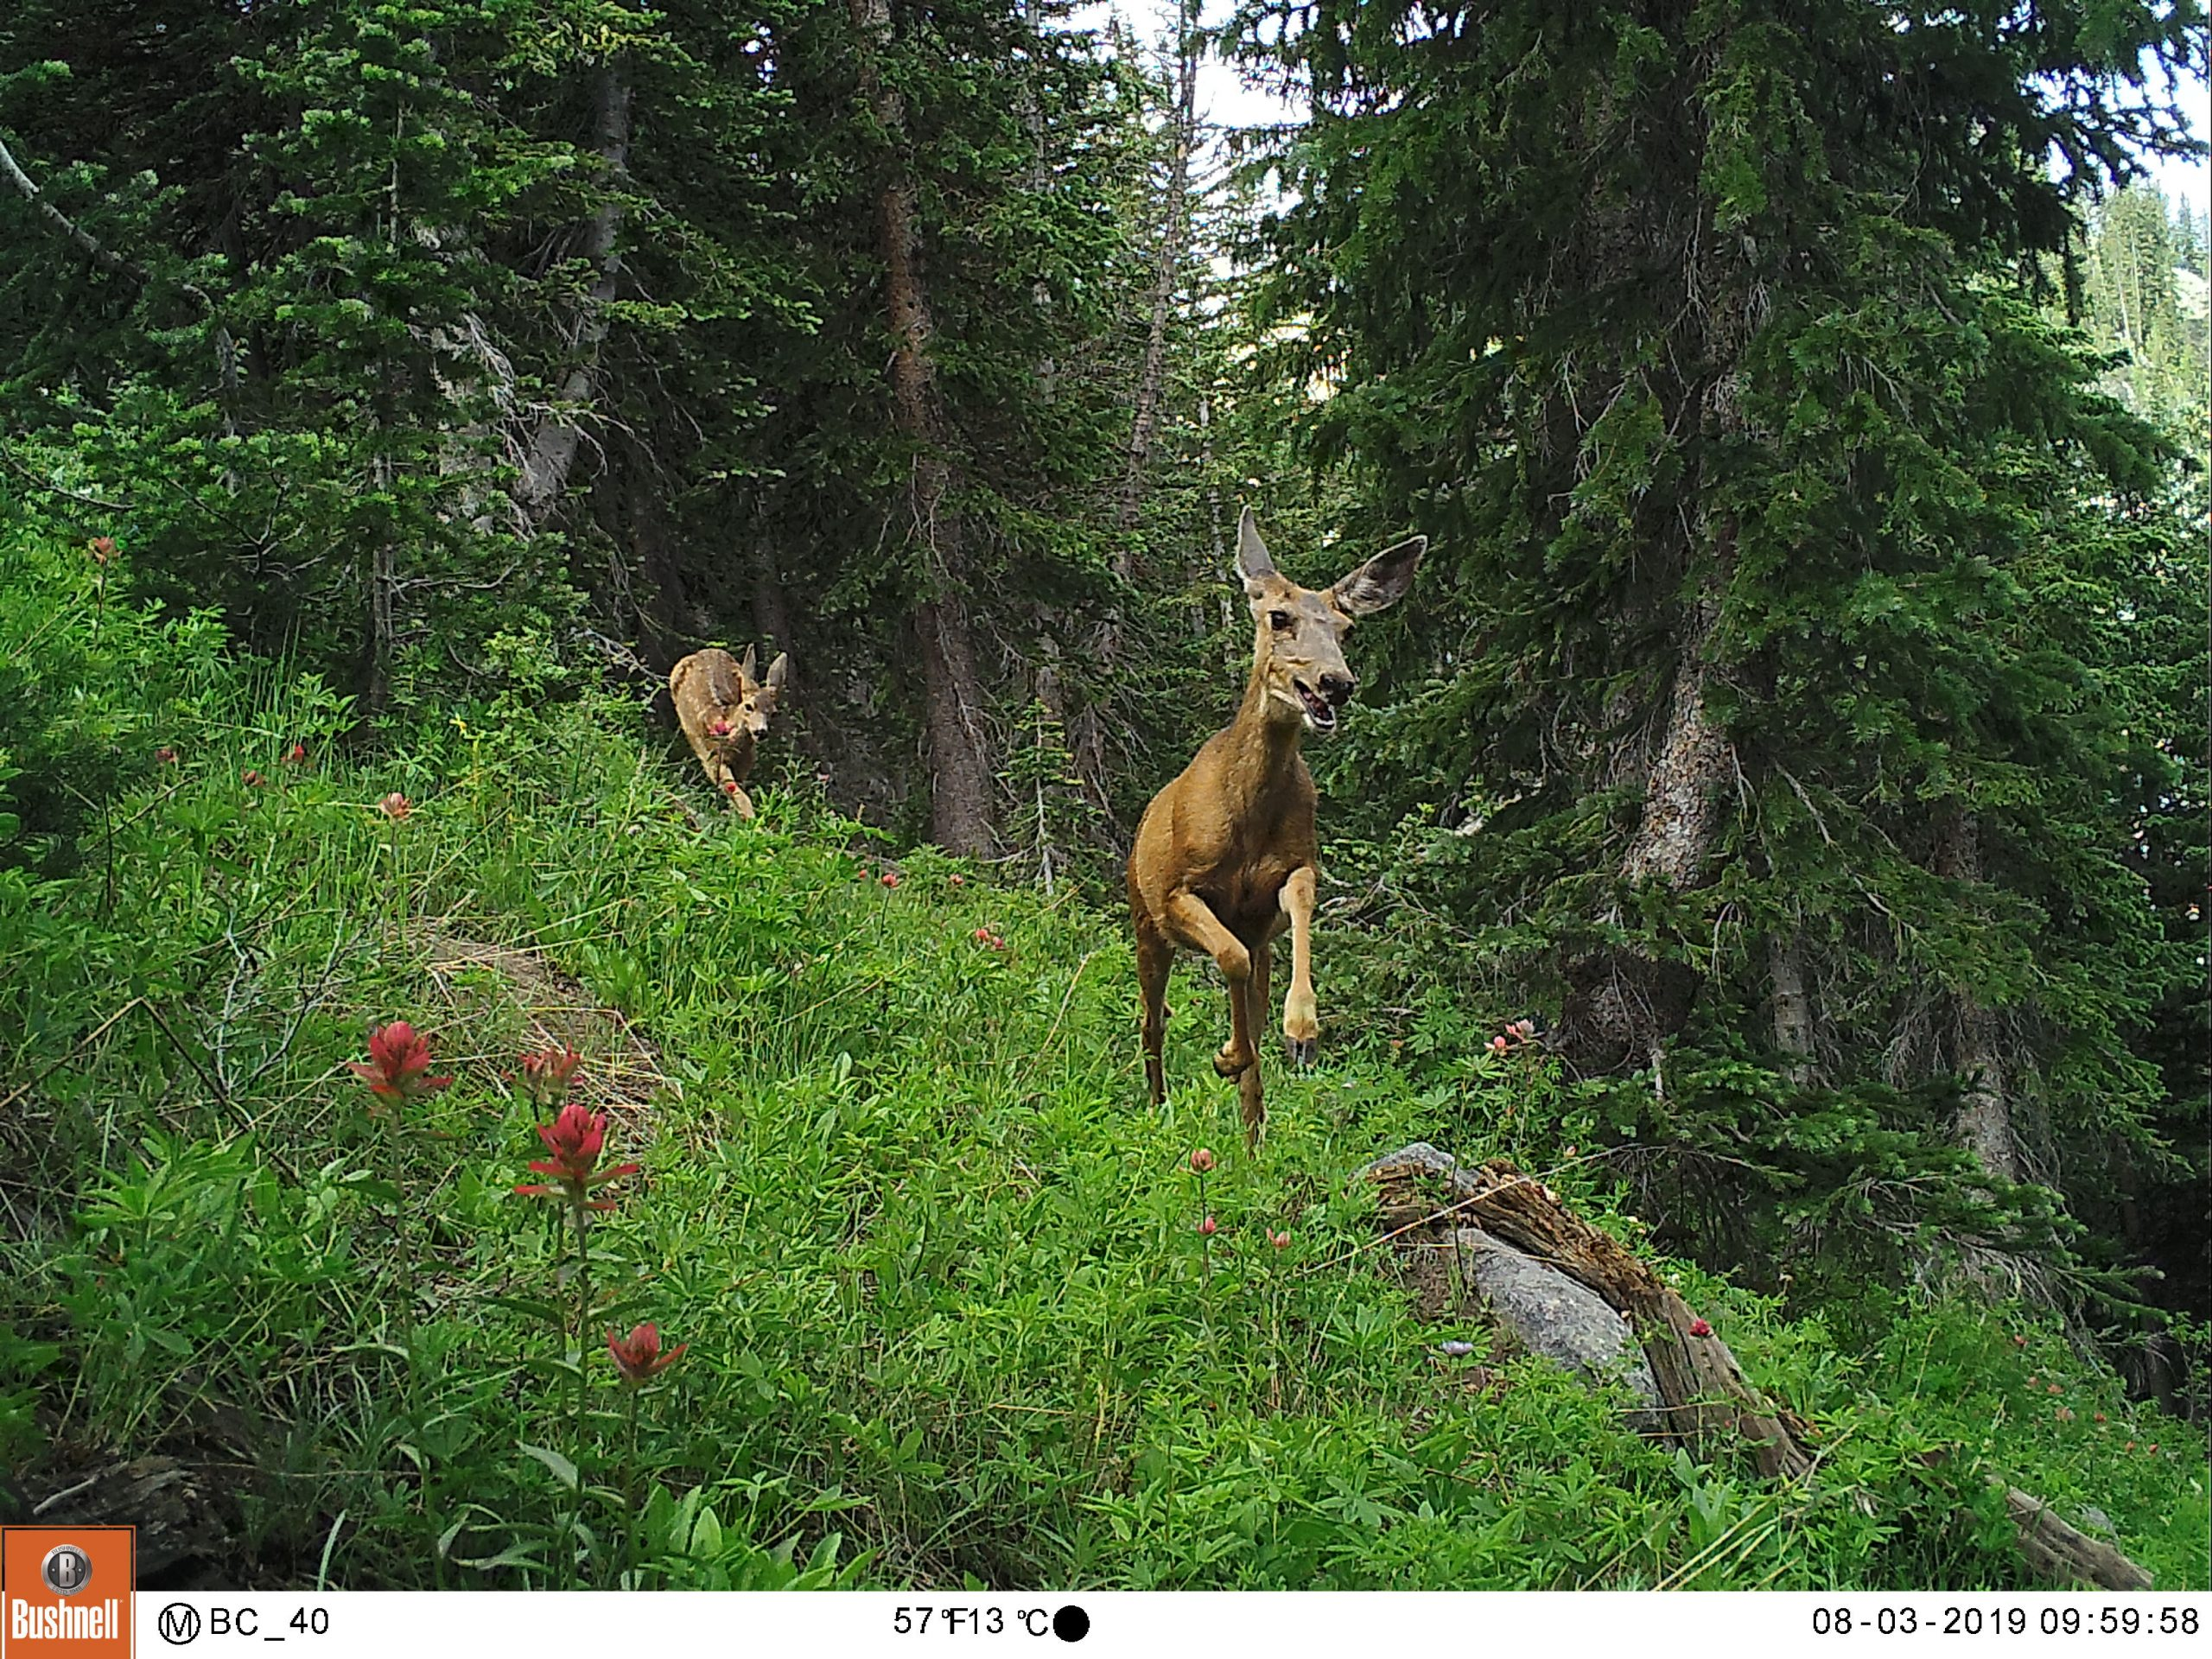 Deer captured on camera in the urban interface at the edge of the Wasatch Mountains